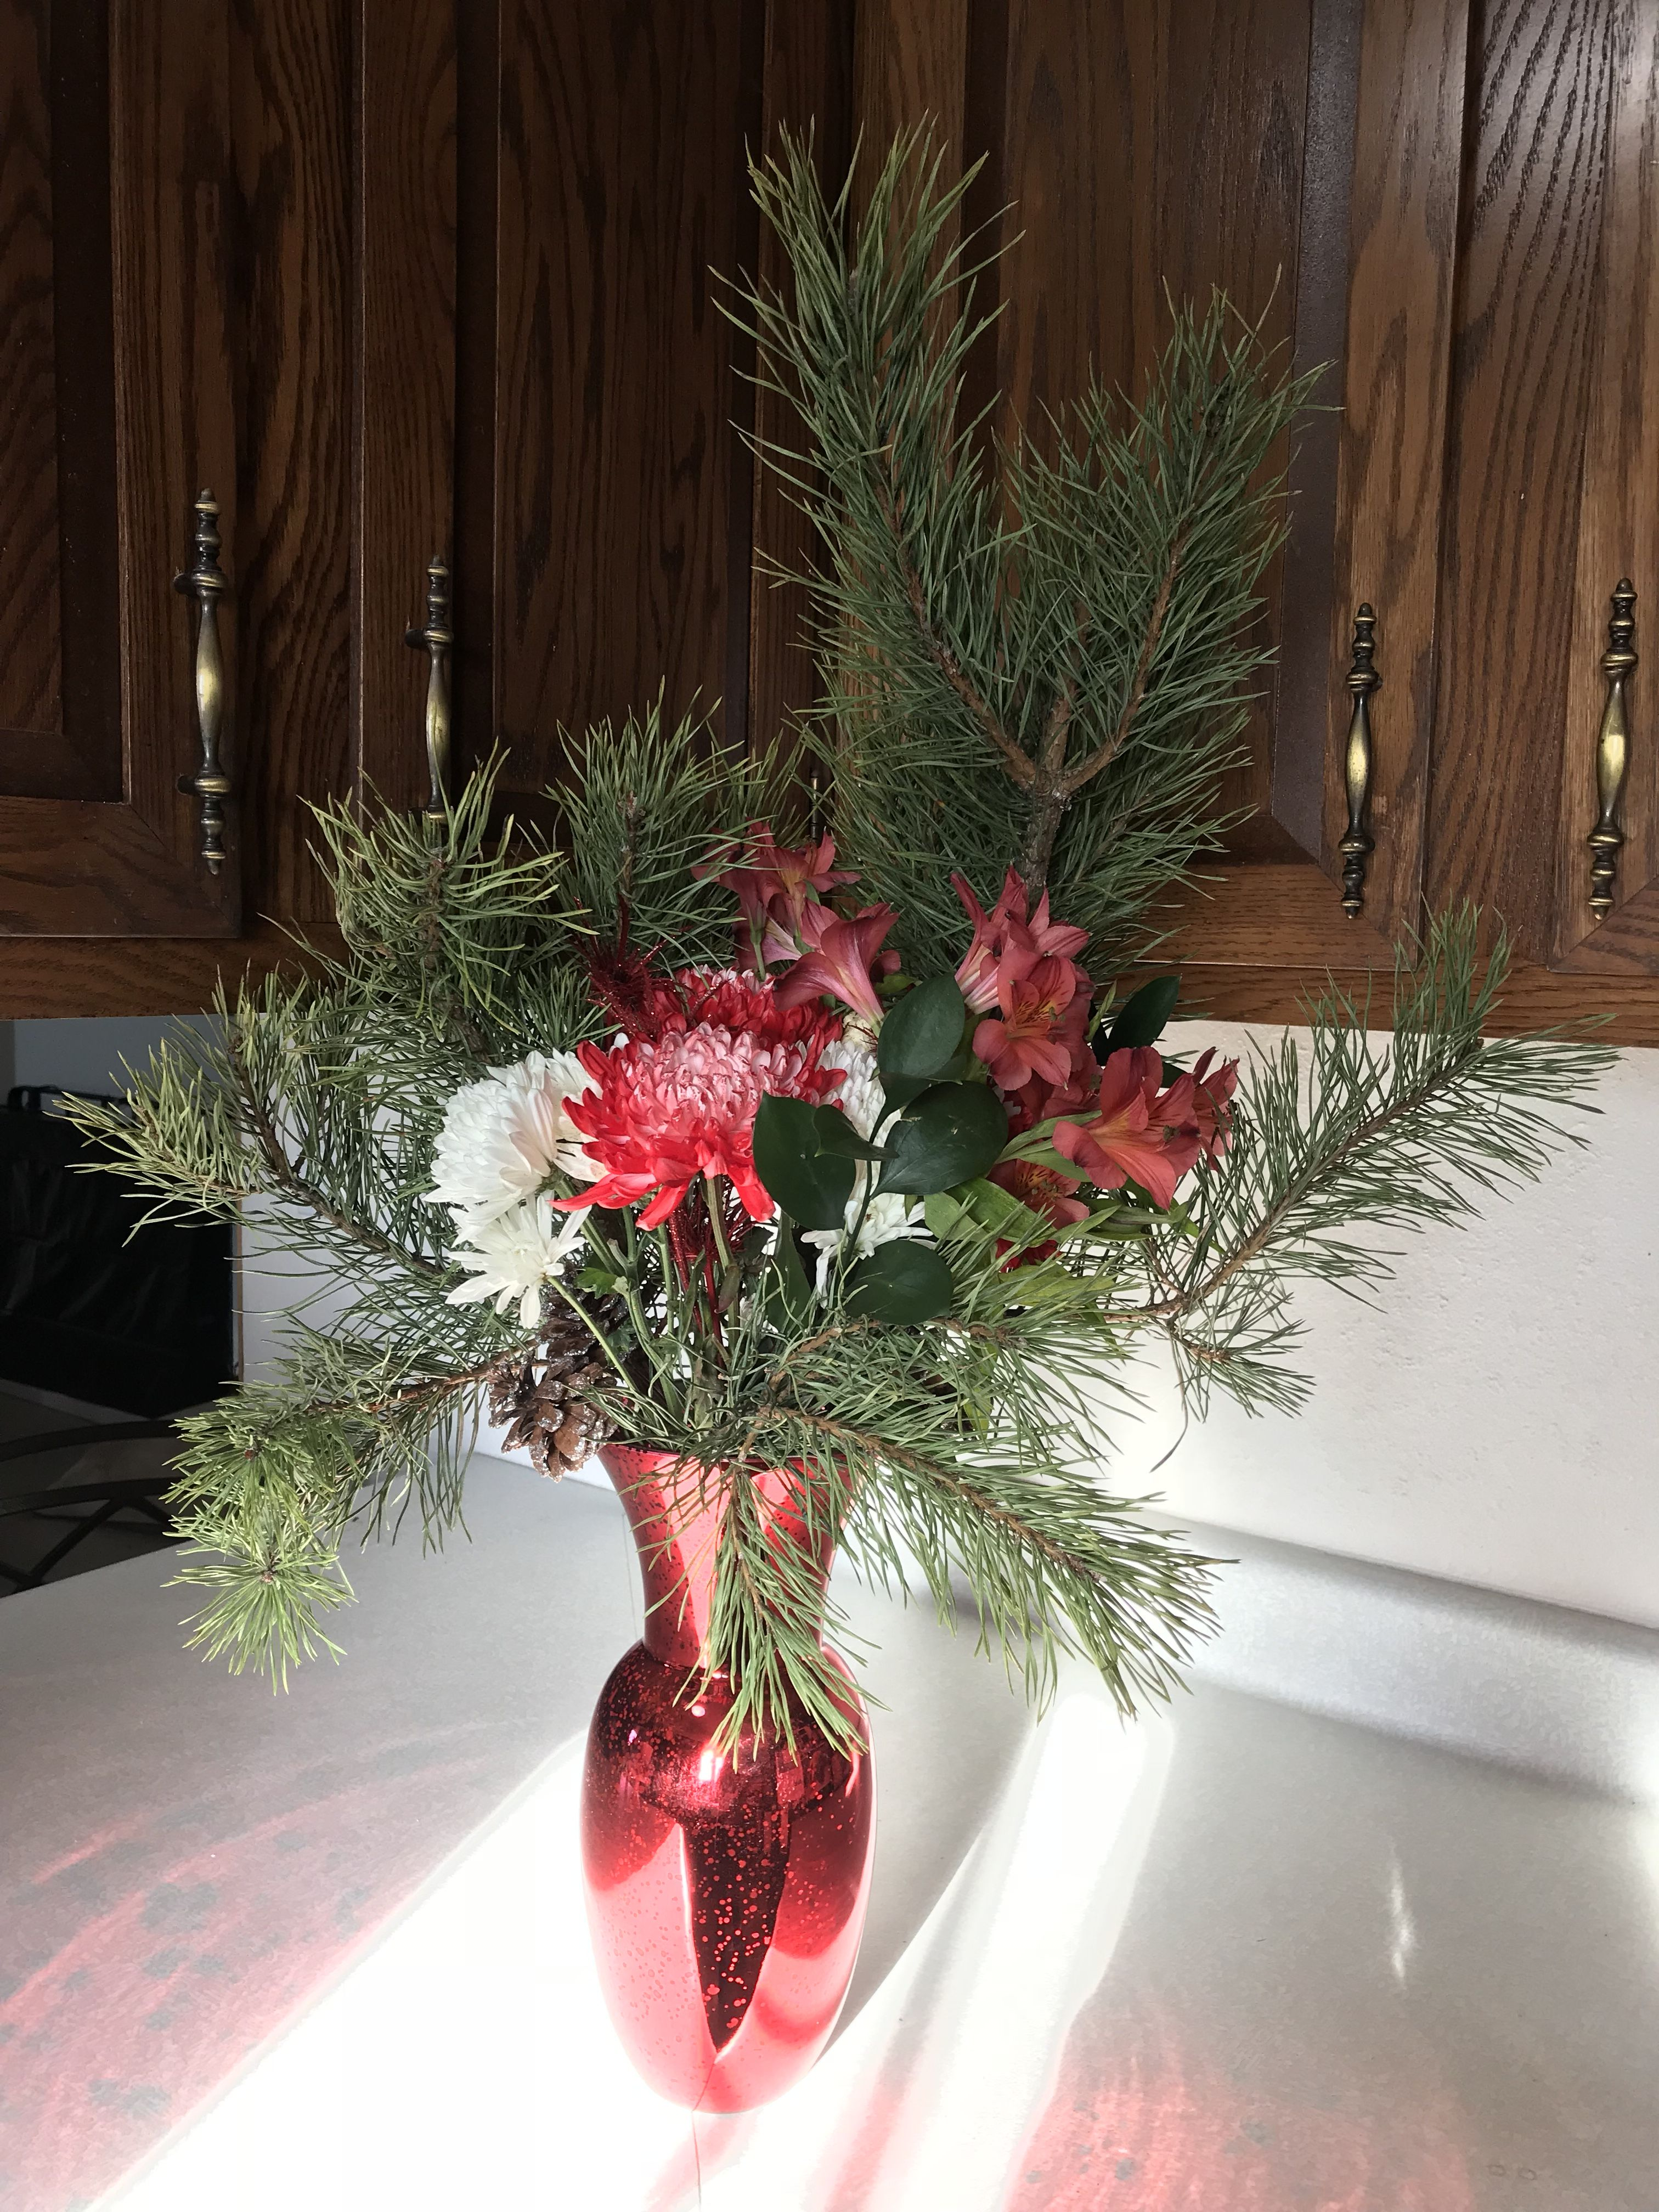 Appreciating the beauty of a winter bouquet. Winter